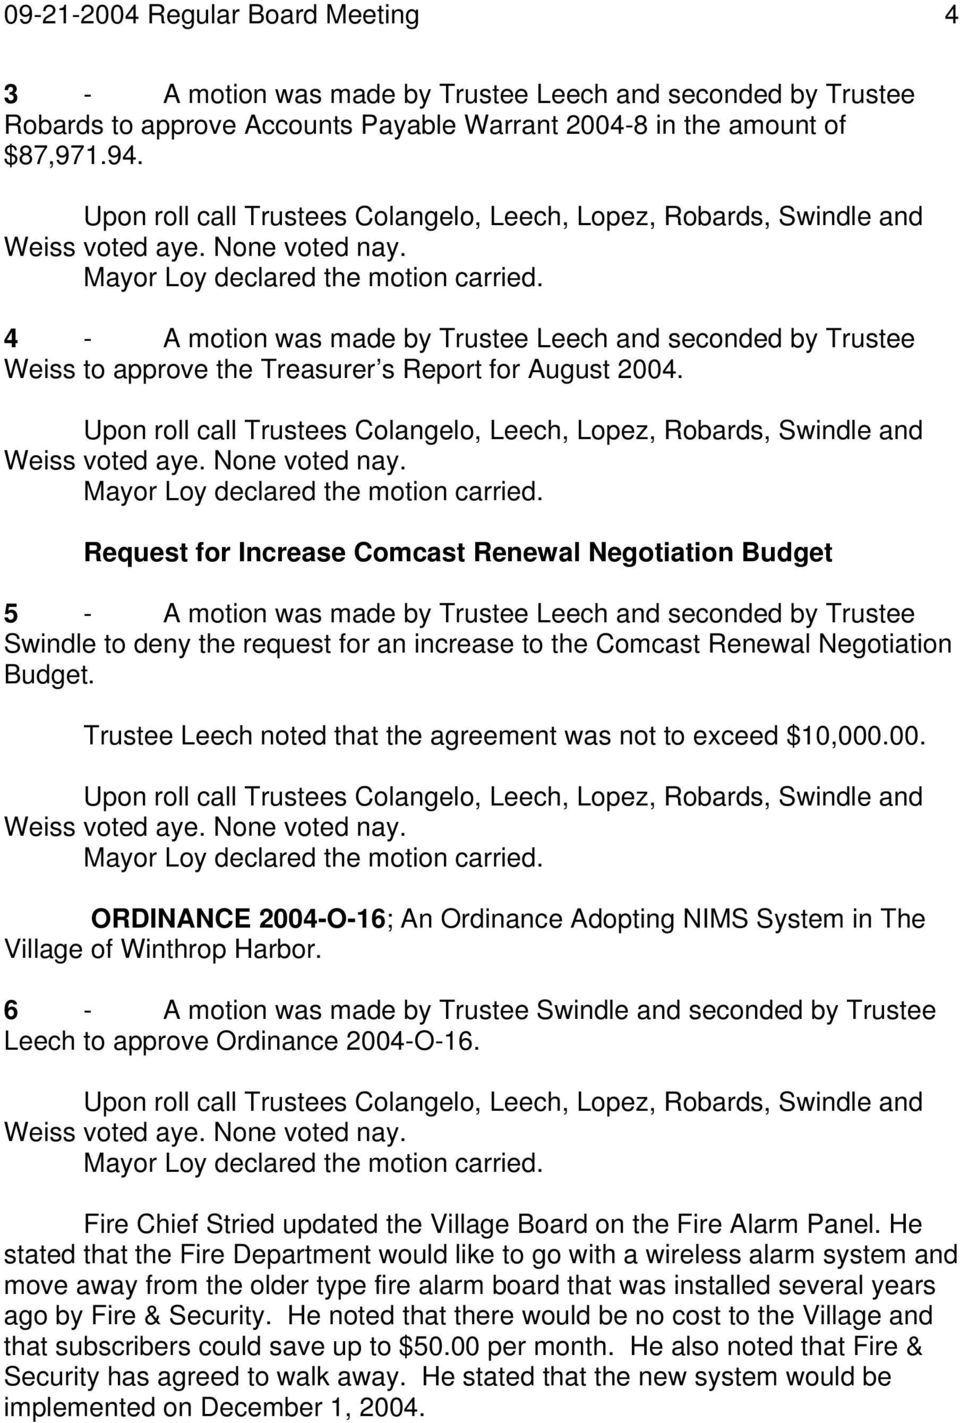 Request for Increase Comcast Renewal Negotiation Budget 5 - A motion was made by Trustee Leech and seconded by Trustee Swindle to deny the request for an increase to the Comcast Renewal Negotiation